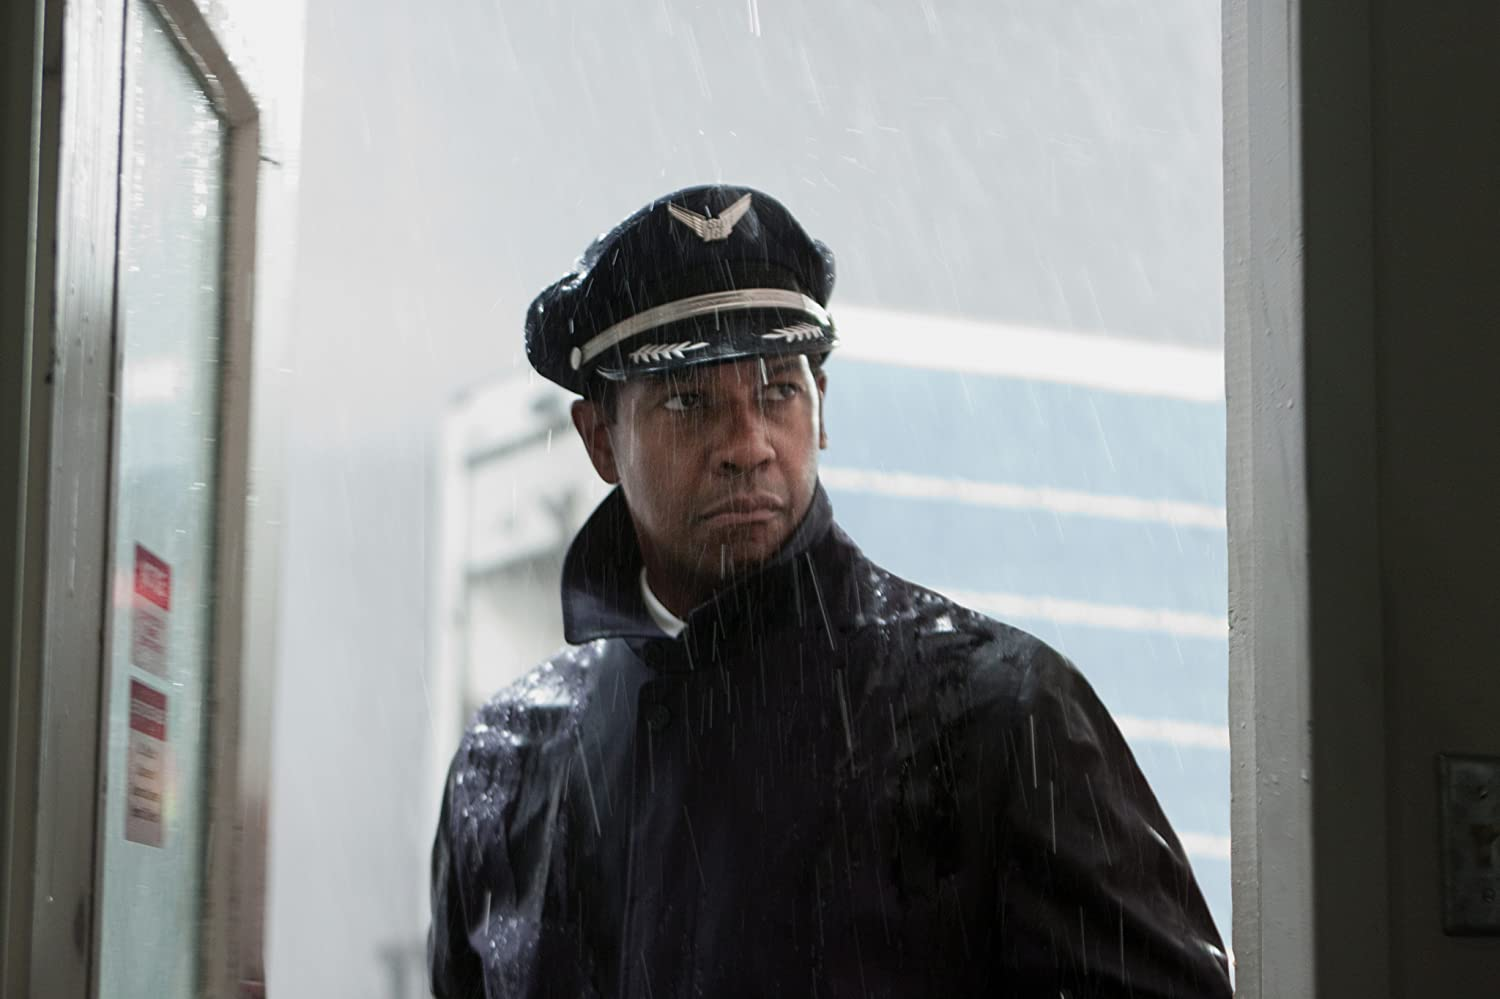 Denzel Washington in Flight (2012)